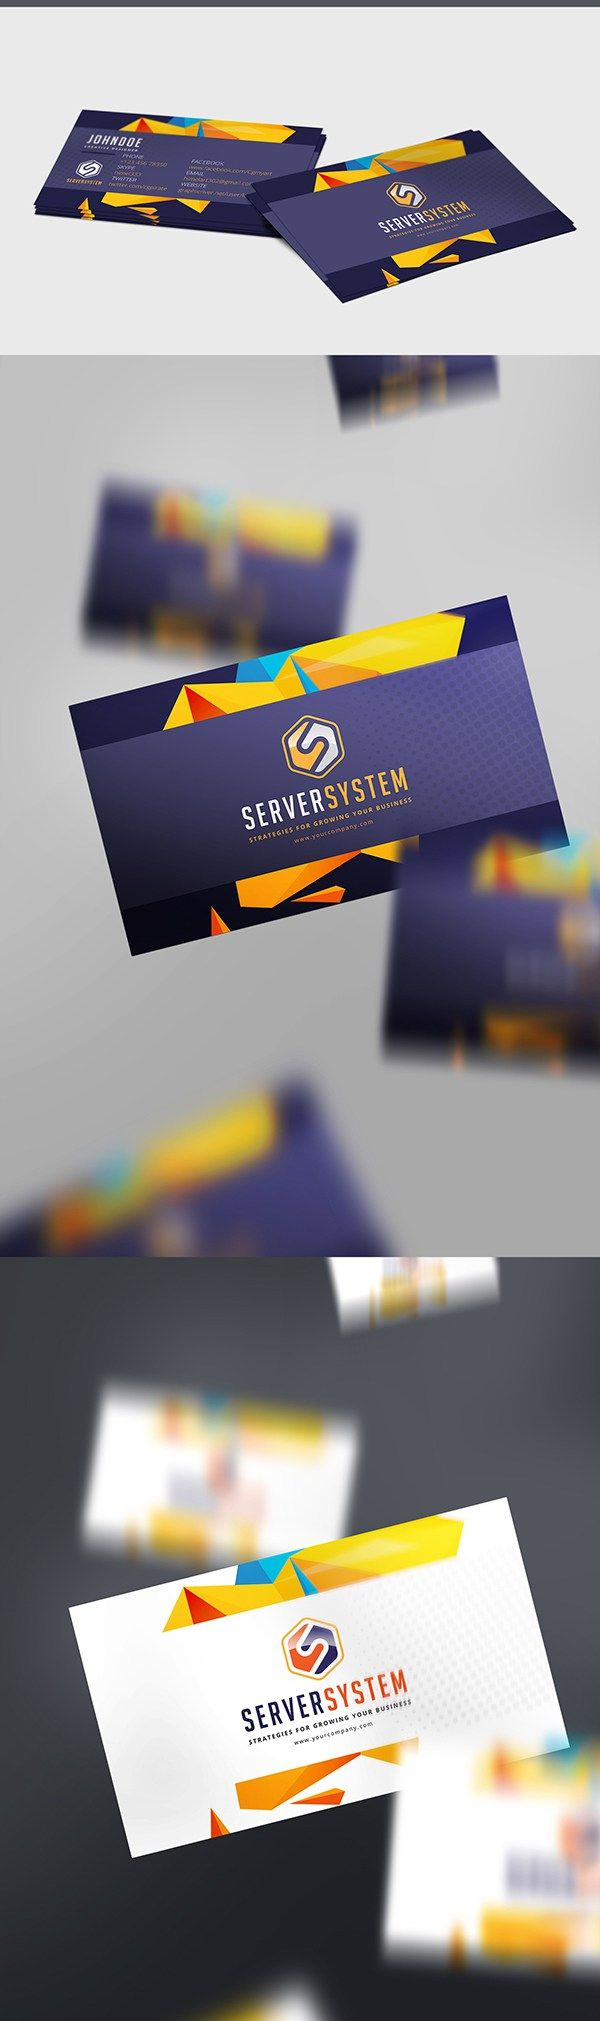 391 best 7 mockup images on pinterest miniatures mockup and model free business card mockup reheart Images